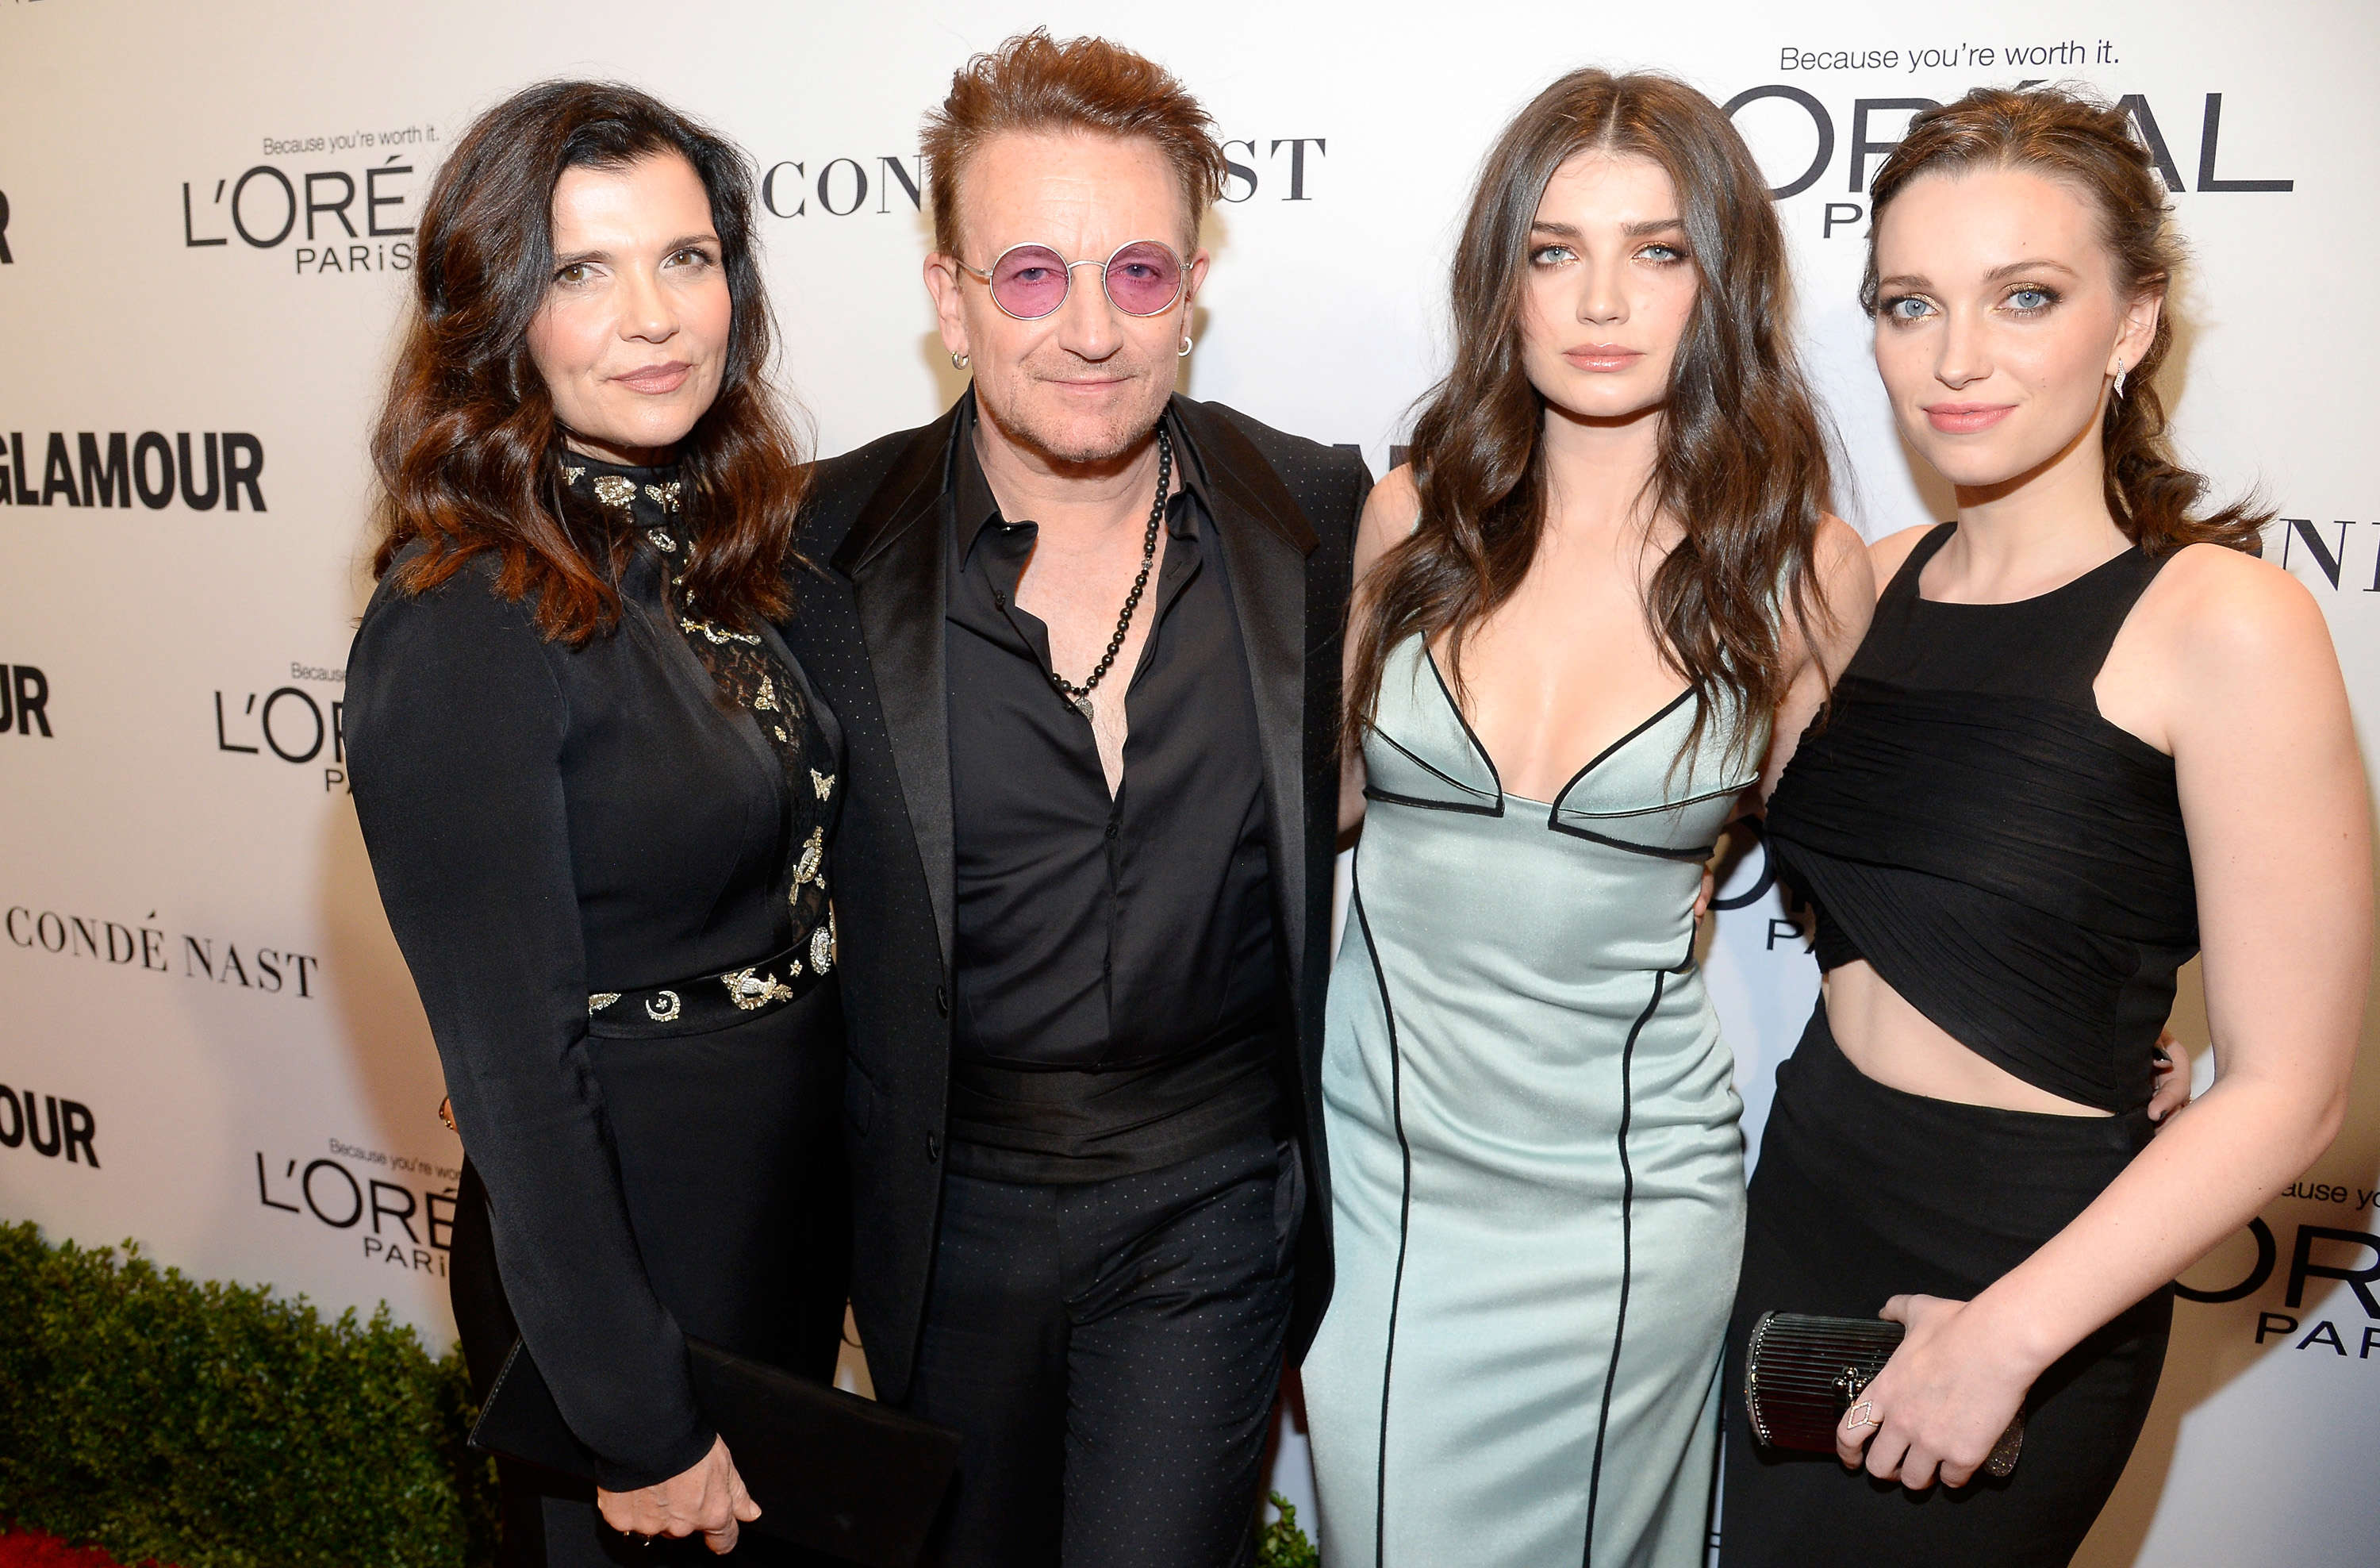 Slide 3 of 18: Alison Hewson, honoree Bono, actress Eve Hewson, and Jordan Hewson attend Glamour Women Of The Year 2016 at NeueHouse Hollywood on November 14, 2016 in Los Angeles, California